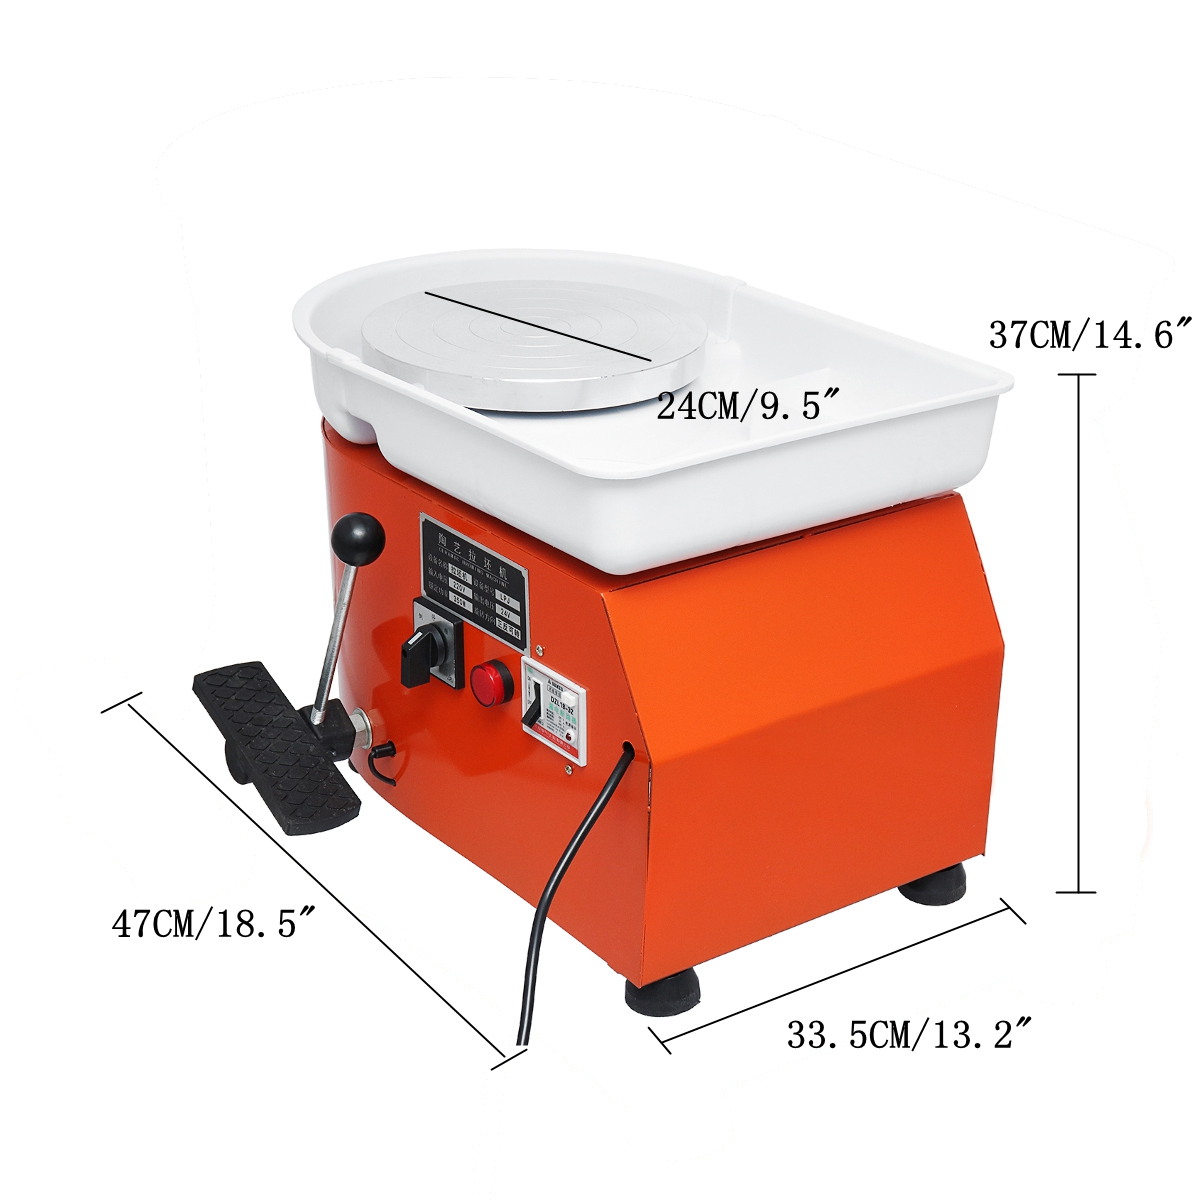 Pottery Forming Machine 250W Electric Pottery Wheel DIY Clay Tool with Tray for Ceramic Machine